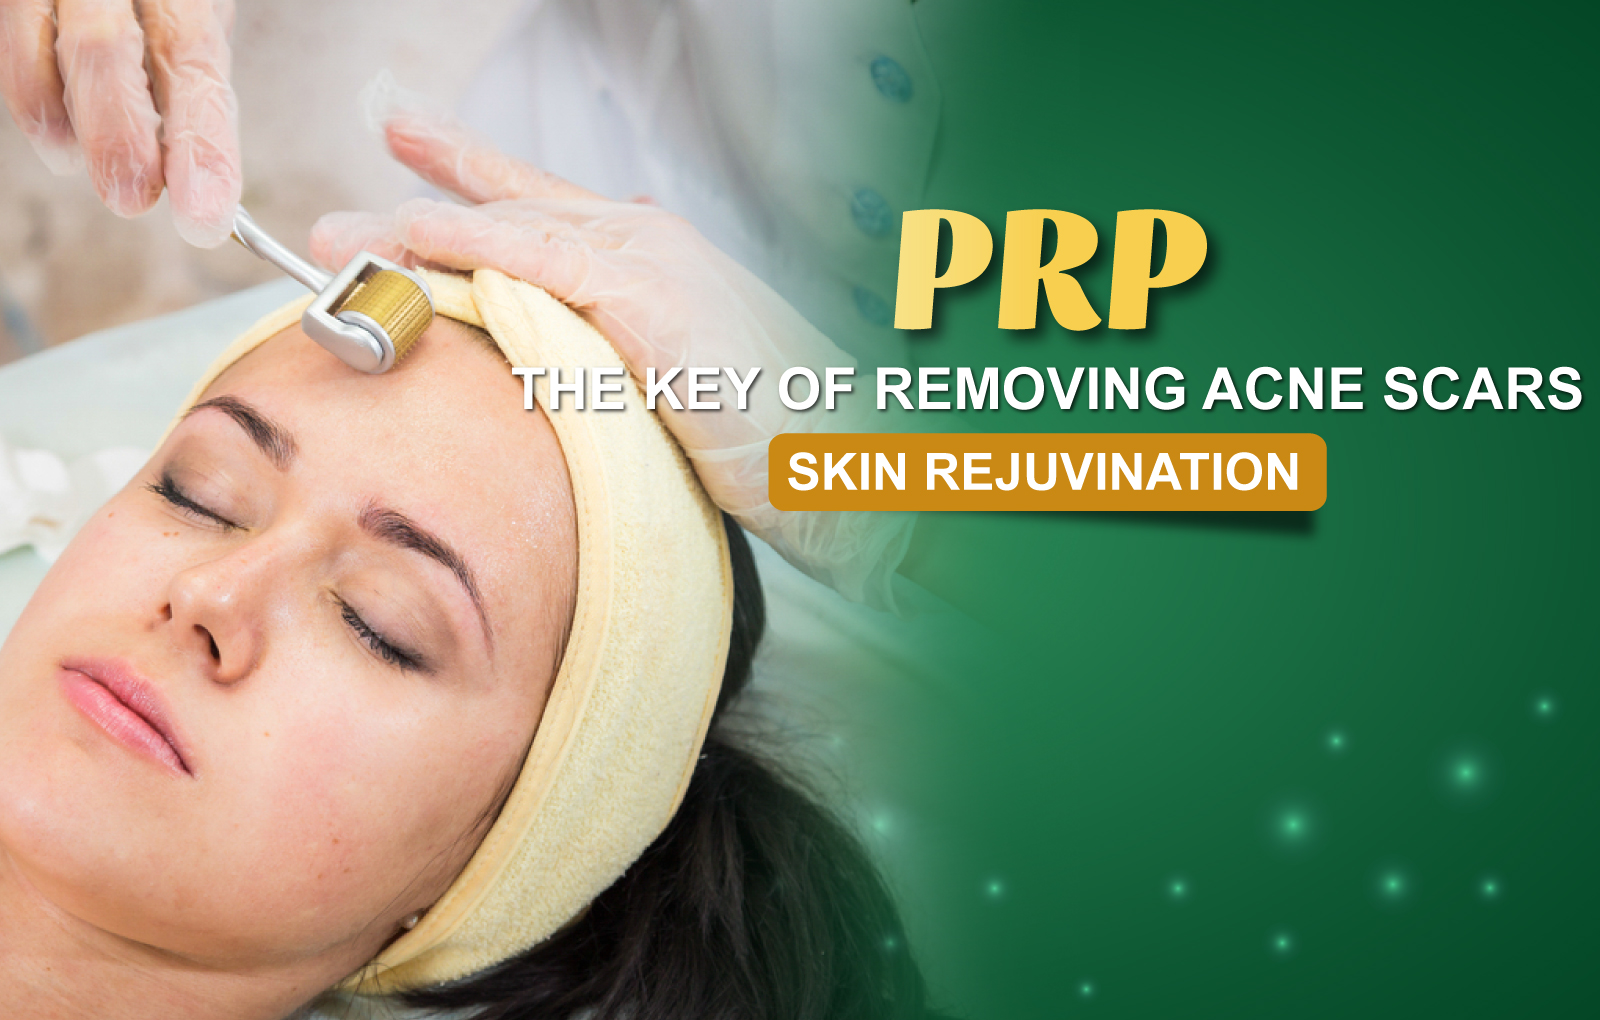 SKIN REJUVENATION - ACNES SCAR TREATMENT BY PRP TECHNOLOGY